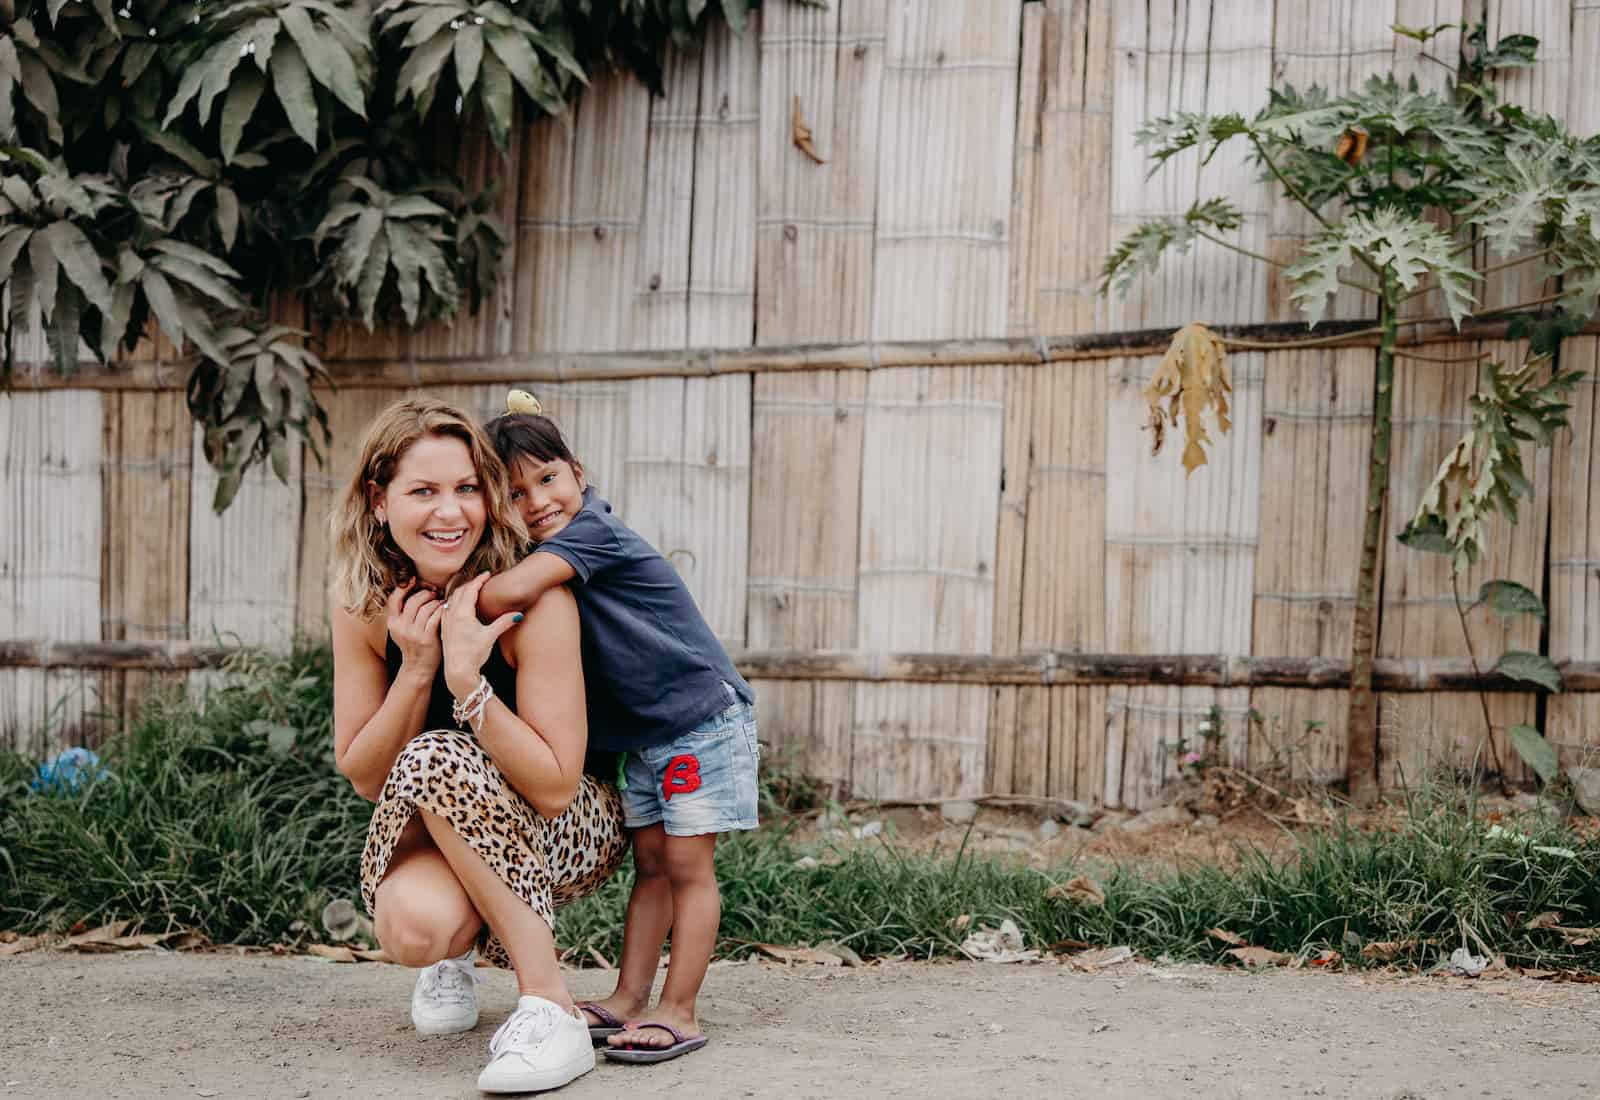 Candace Cameron Bure squats on the ground, with a young girl hugging her.